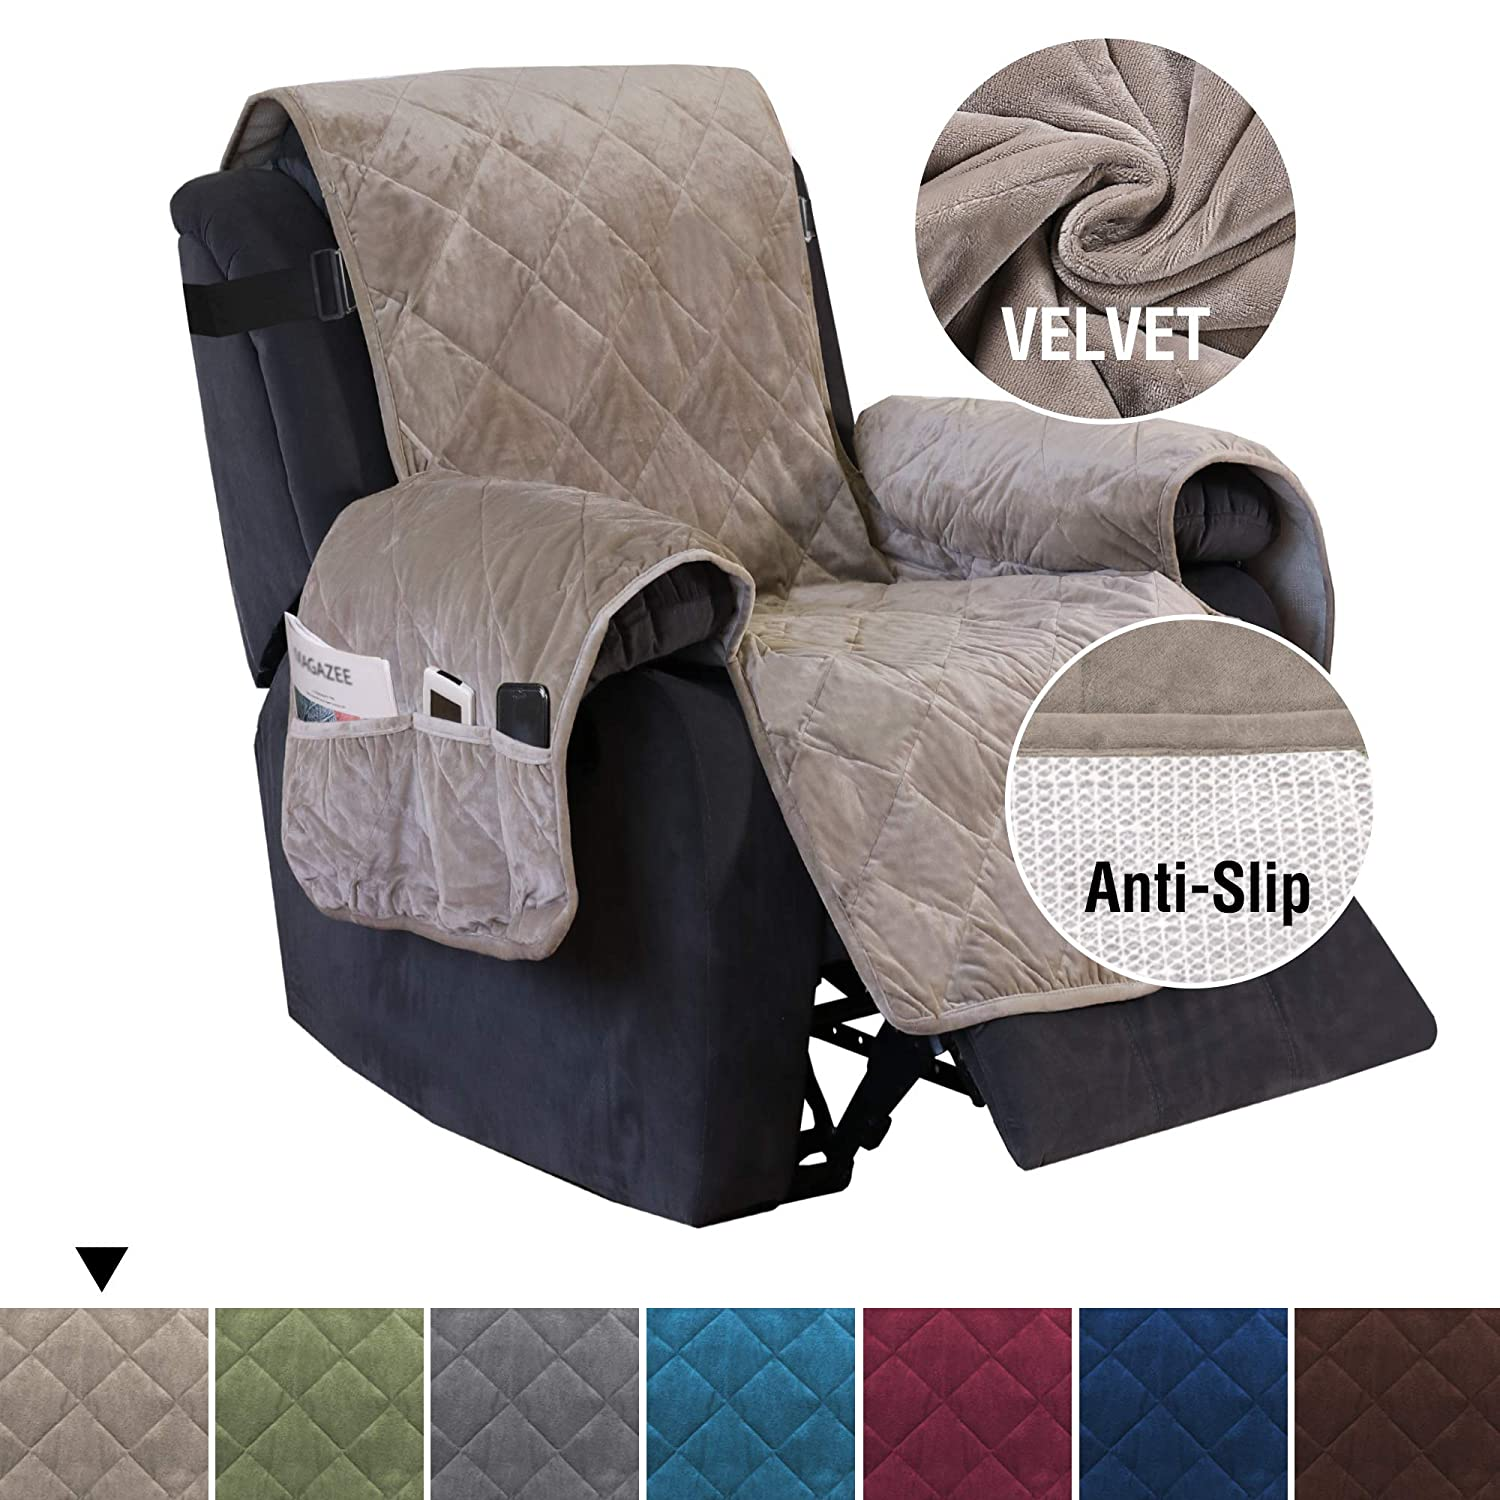 "H.VERSAILTEX Quilted Velvet Plush Recliner Slipcover Recliner Chair Cover Recliner Covers for Large Recliner, Non-Slip Furniture Protector with 2"" Straps, Seat Width Up to 28"" (Recliner: Taupe)"